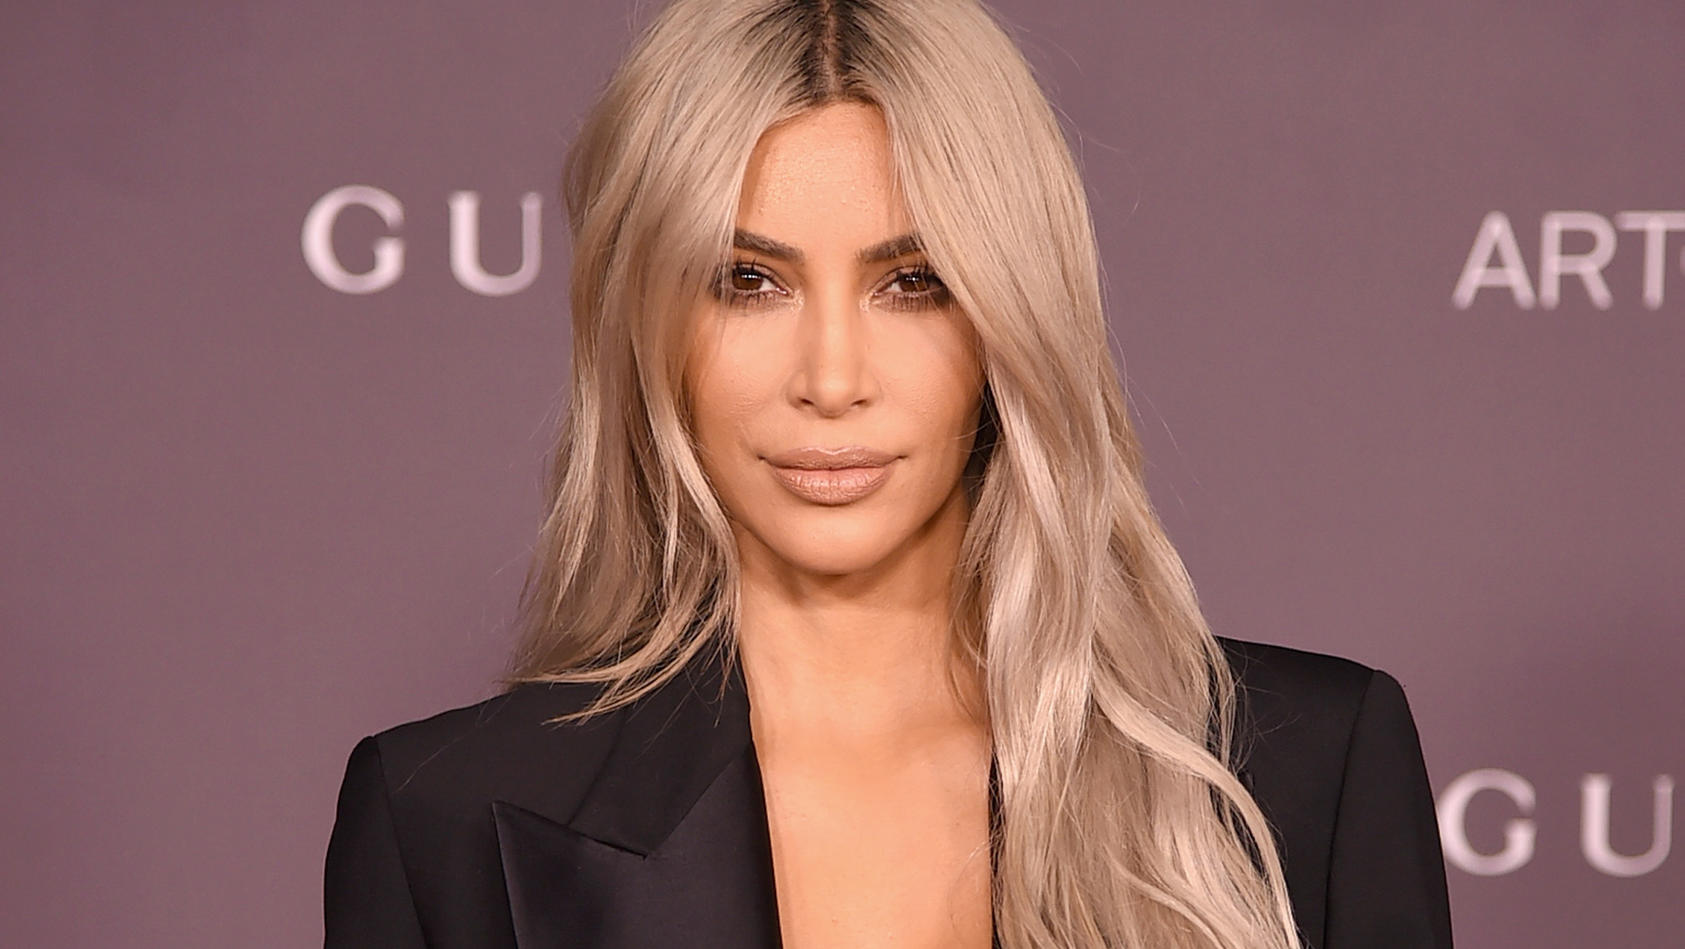 Kim Kardashian bei der 'LACMA Art + Film Gala' im November 2017 in Los Angeles